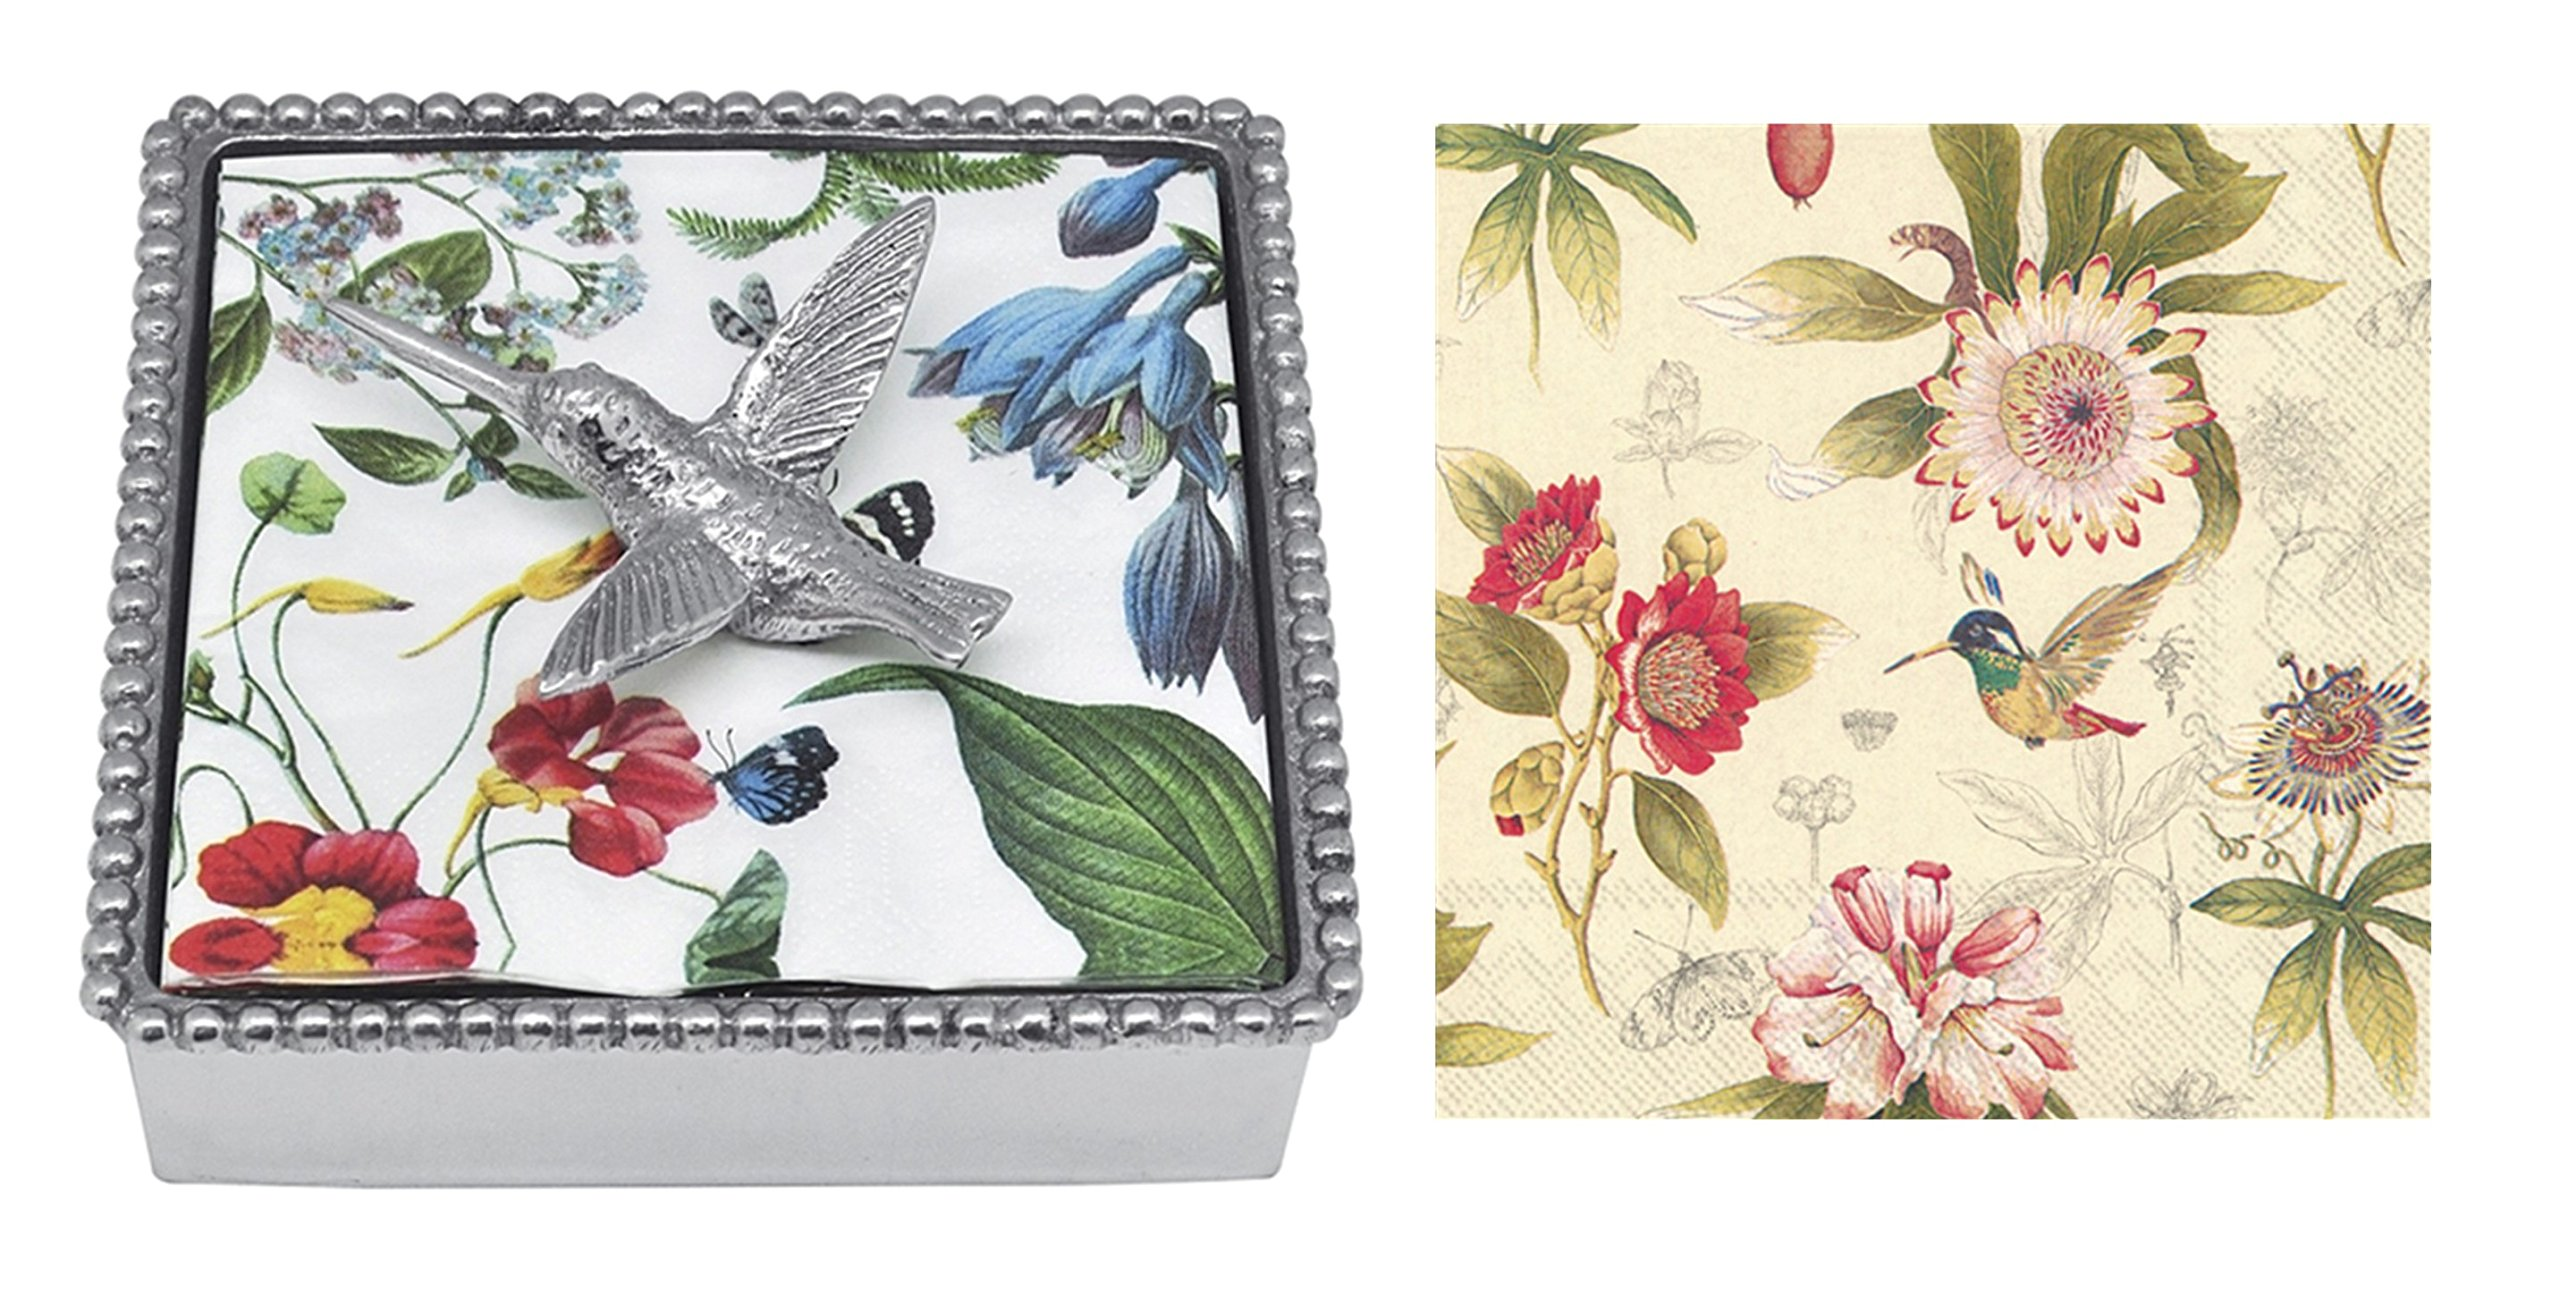 Mariposa Beaded Napkin Box with Hummingbird Napkin Weight & 2 sets of Napkins by Mariposa